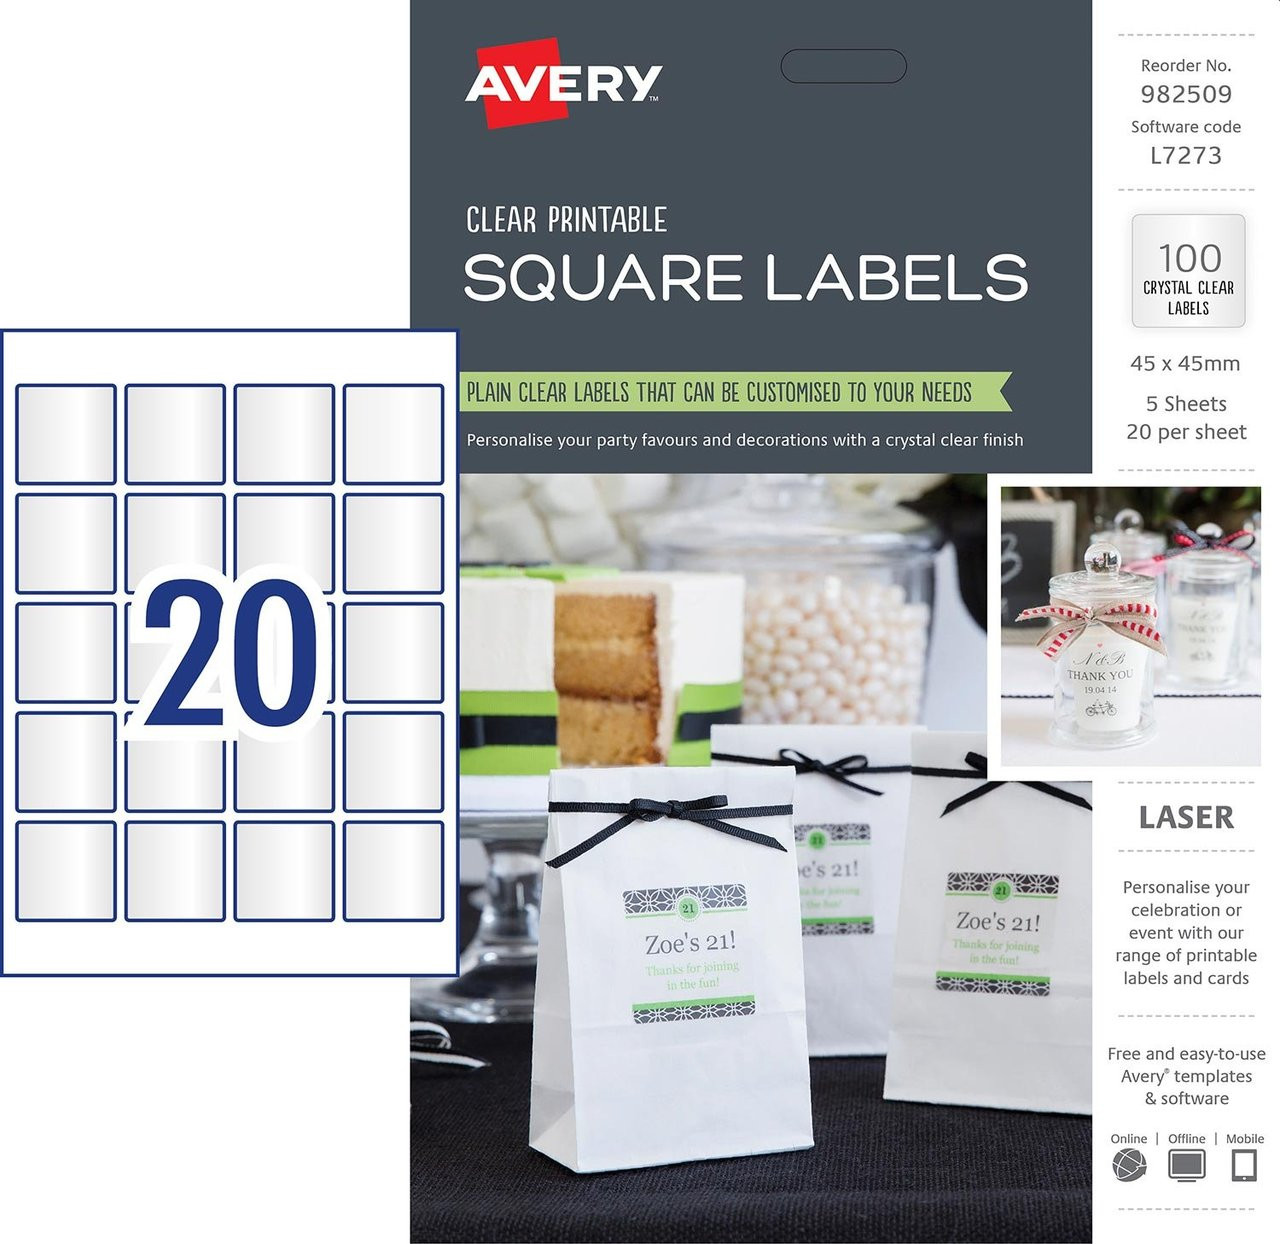 graphic about Clear Printable Labels named AVERY 982509 Crystal clear Sq. LABELS, L7273, 100/PACK, 45 X 45MM 20UP